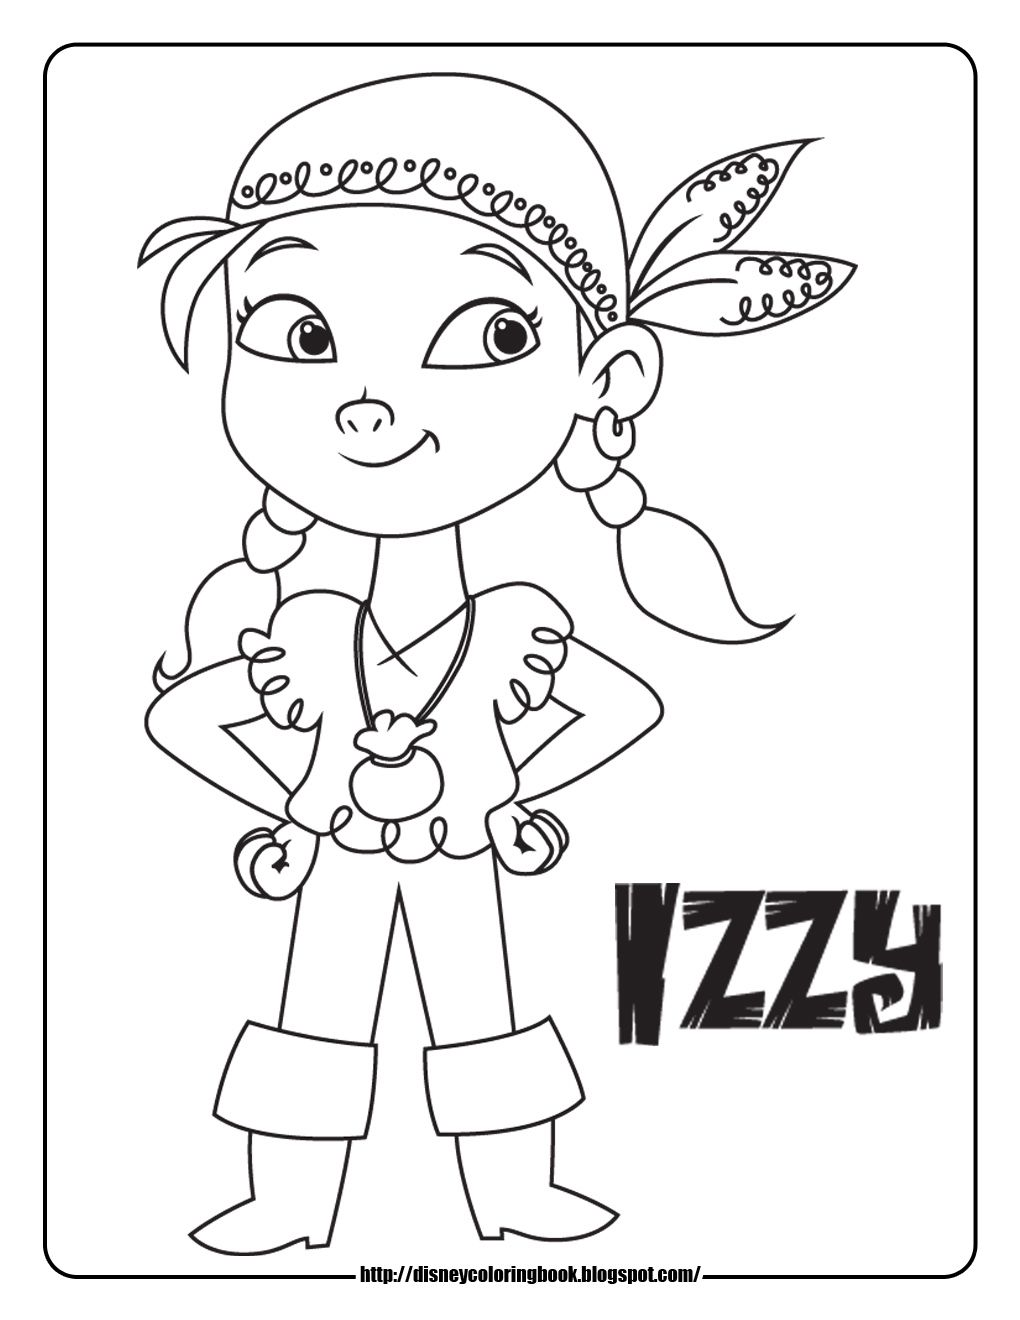 Color crew printables - Jake And The Never Land Pirates Coloring Pages Coloring Sheets Izzy